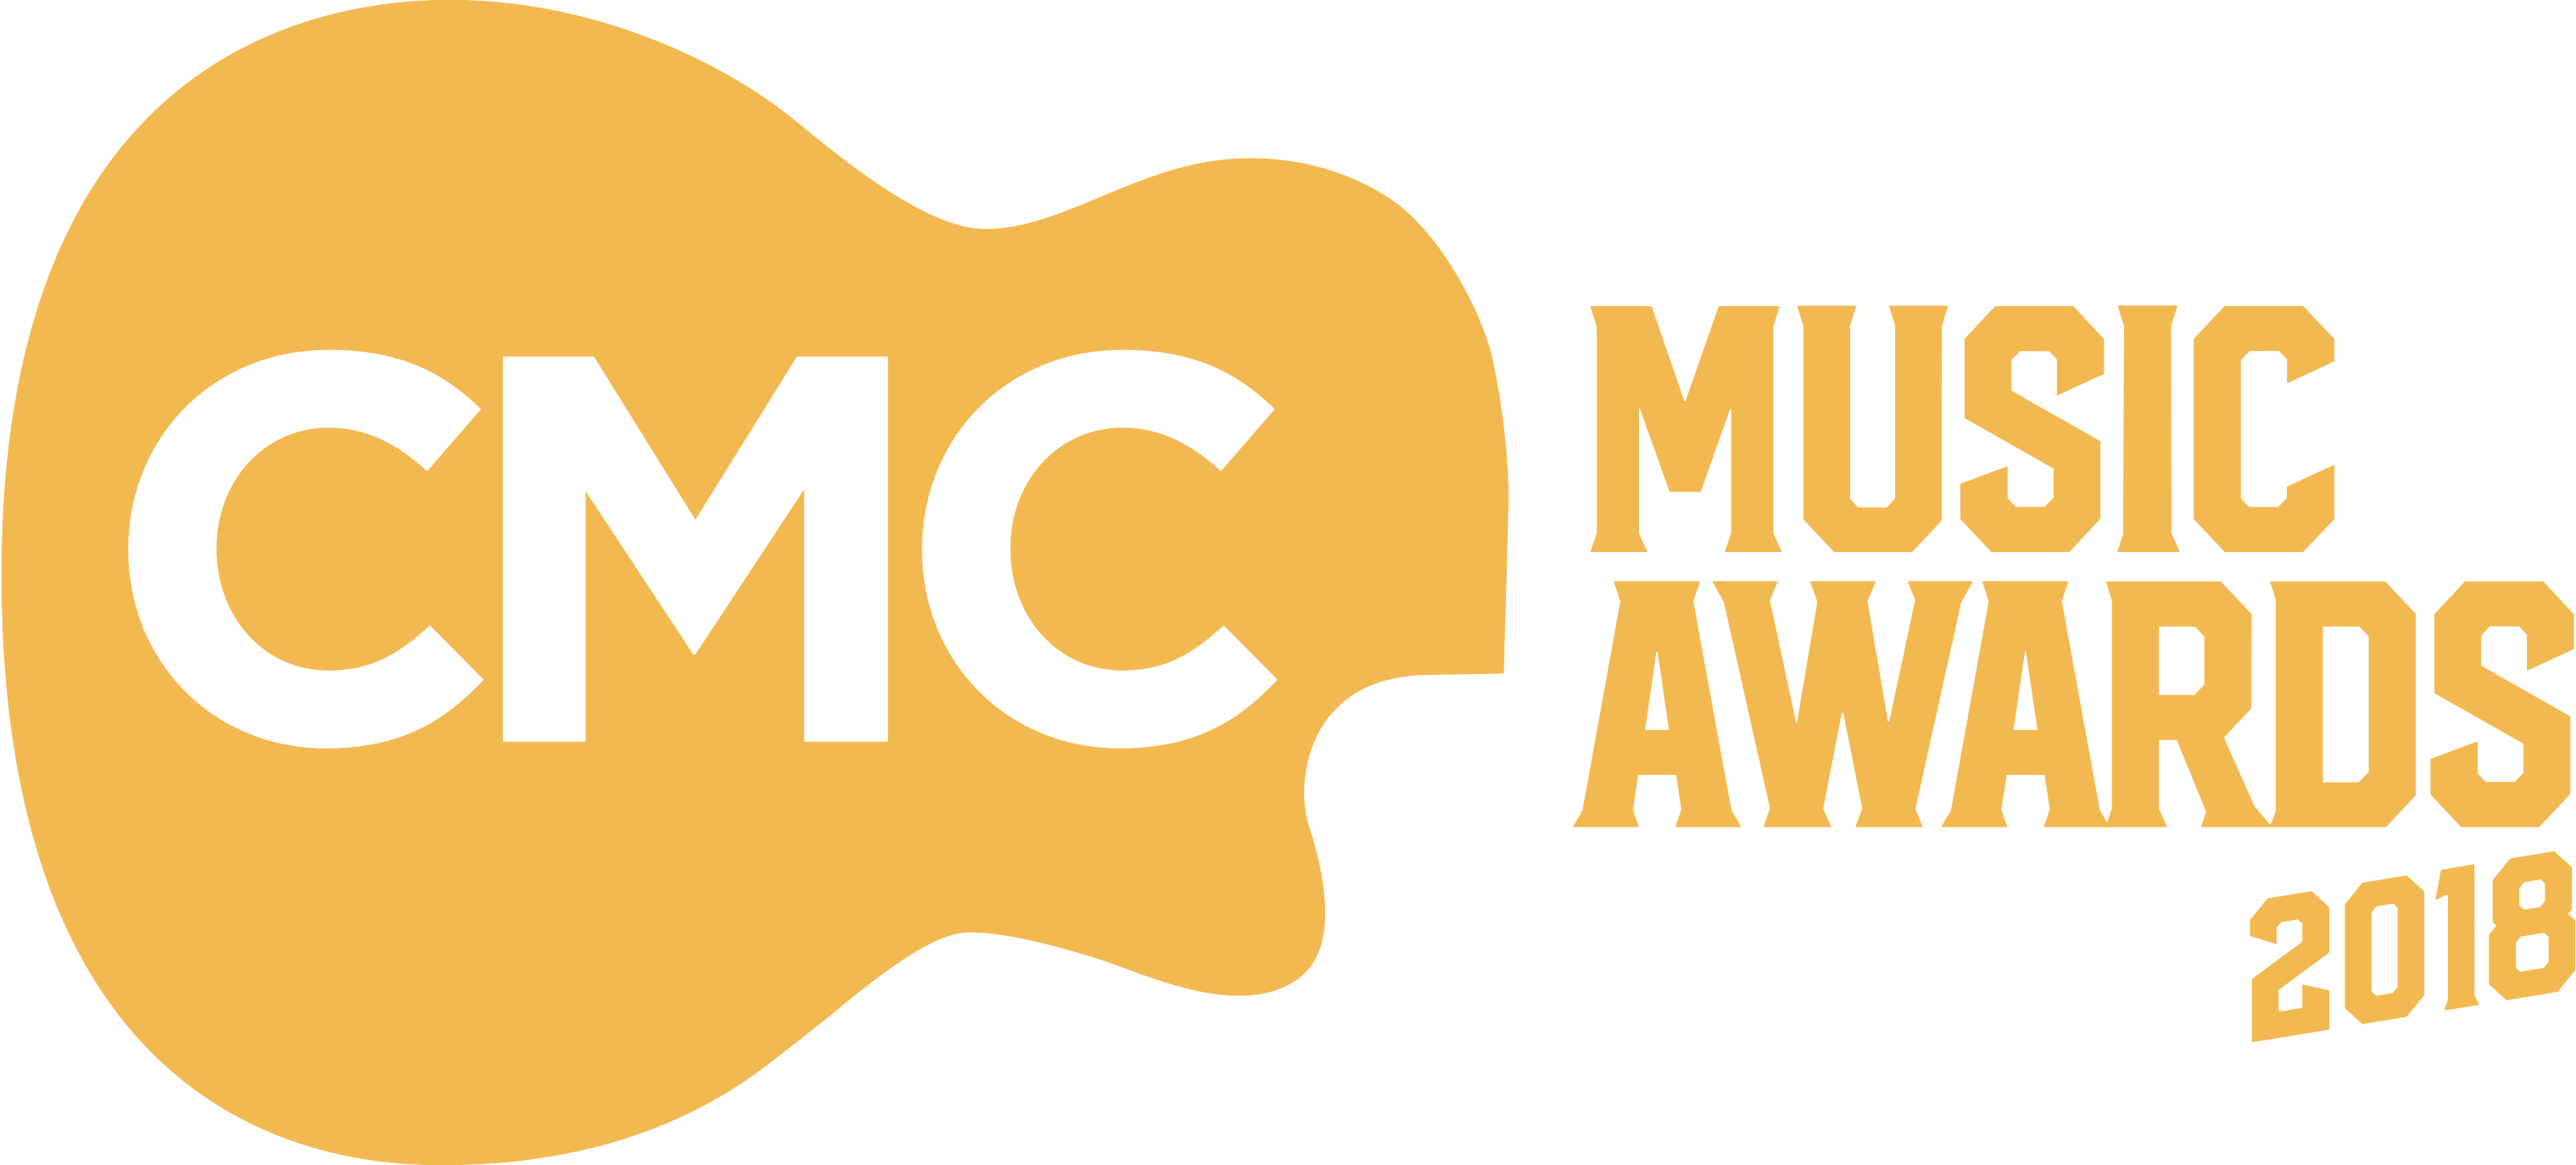 Country music awards logo png. Cmc finalist announced kix